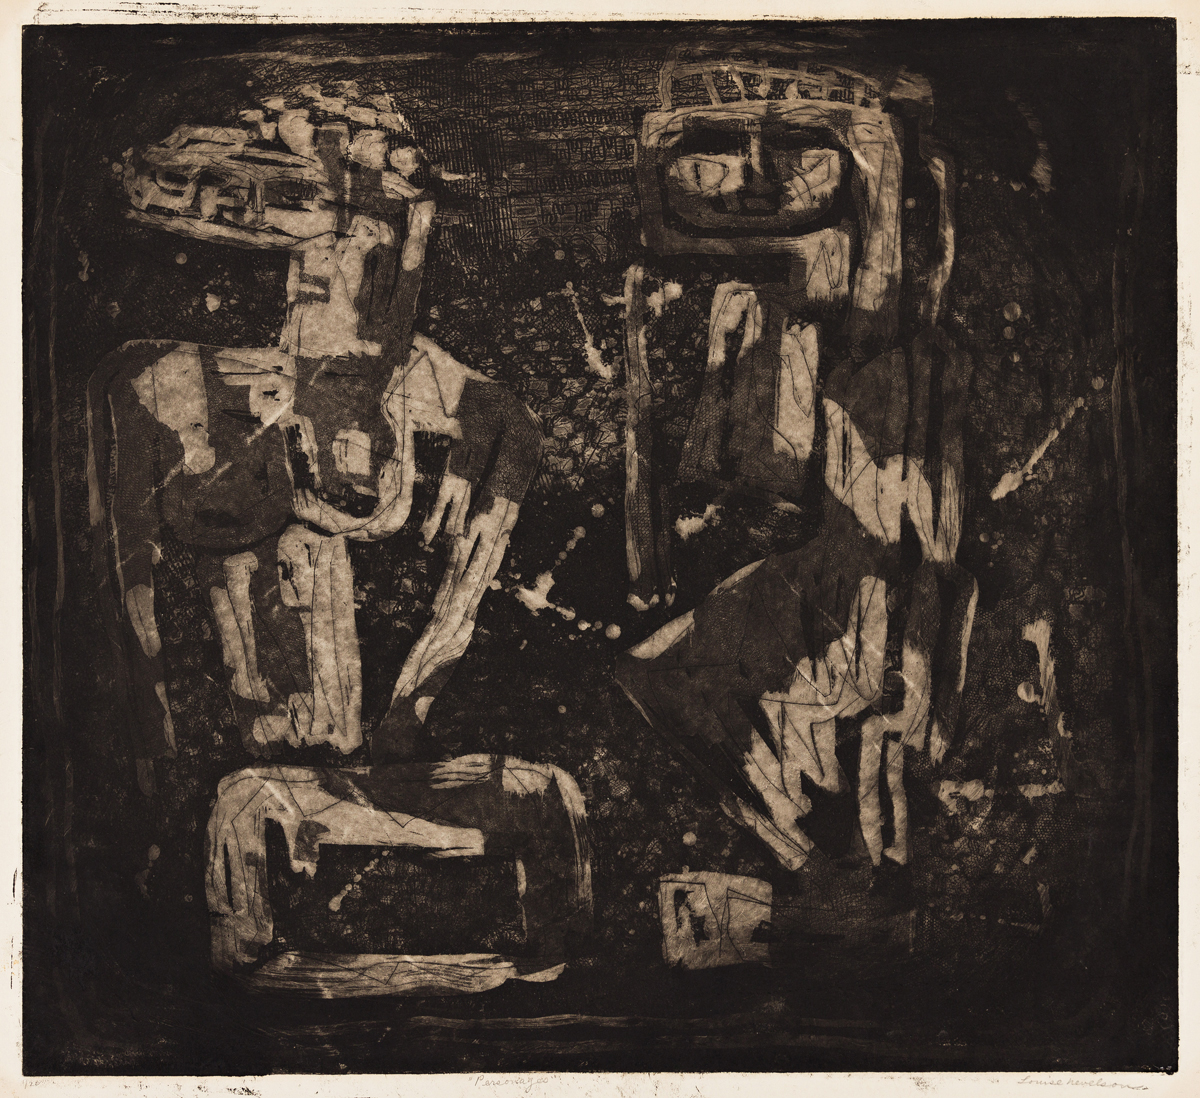 LOUISE NEVELSON One Ancient Figures.